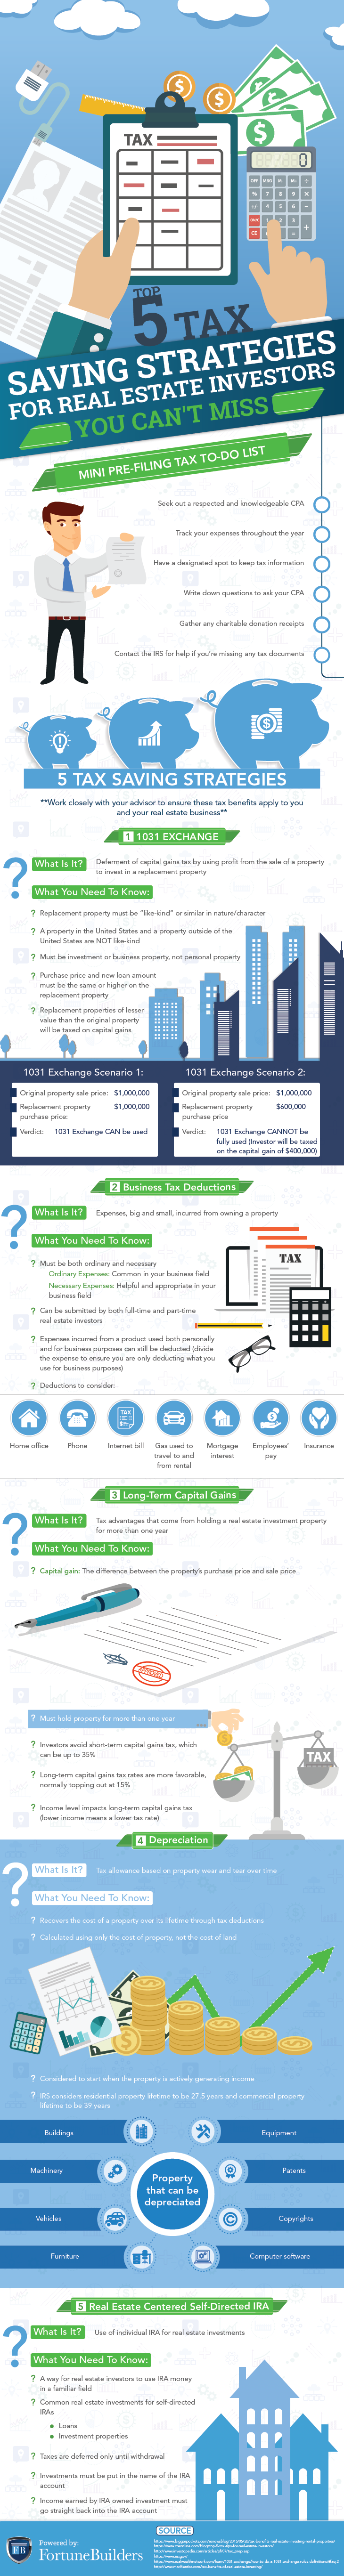 5 Tax Saving Strategies That Will Save You Money Savings Strategy Real Estate Classes Real Estate Investor